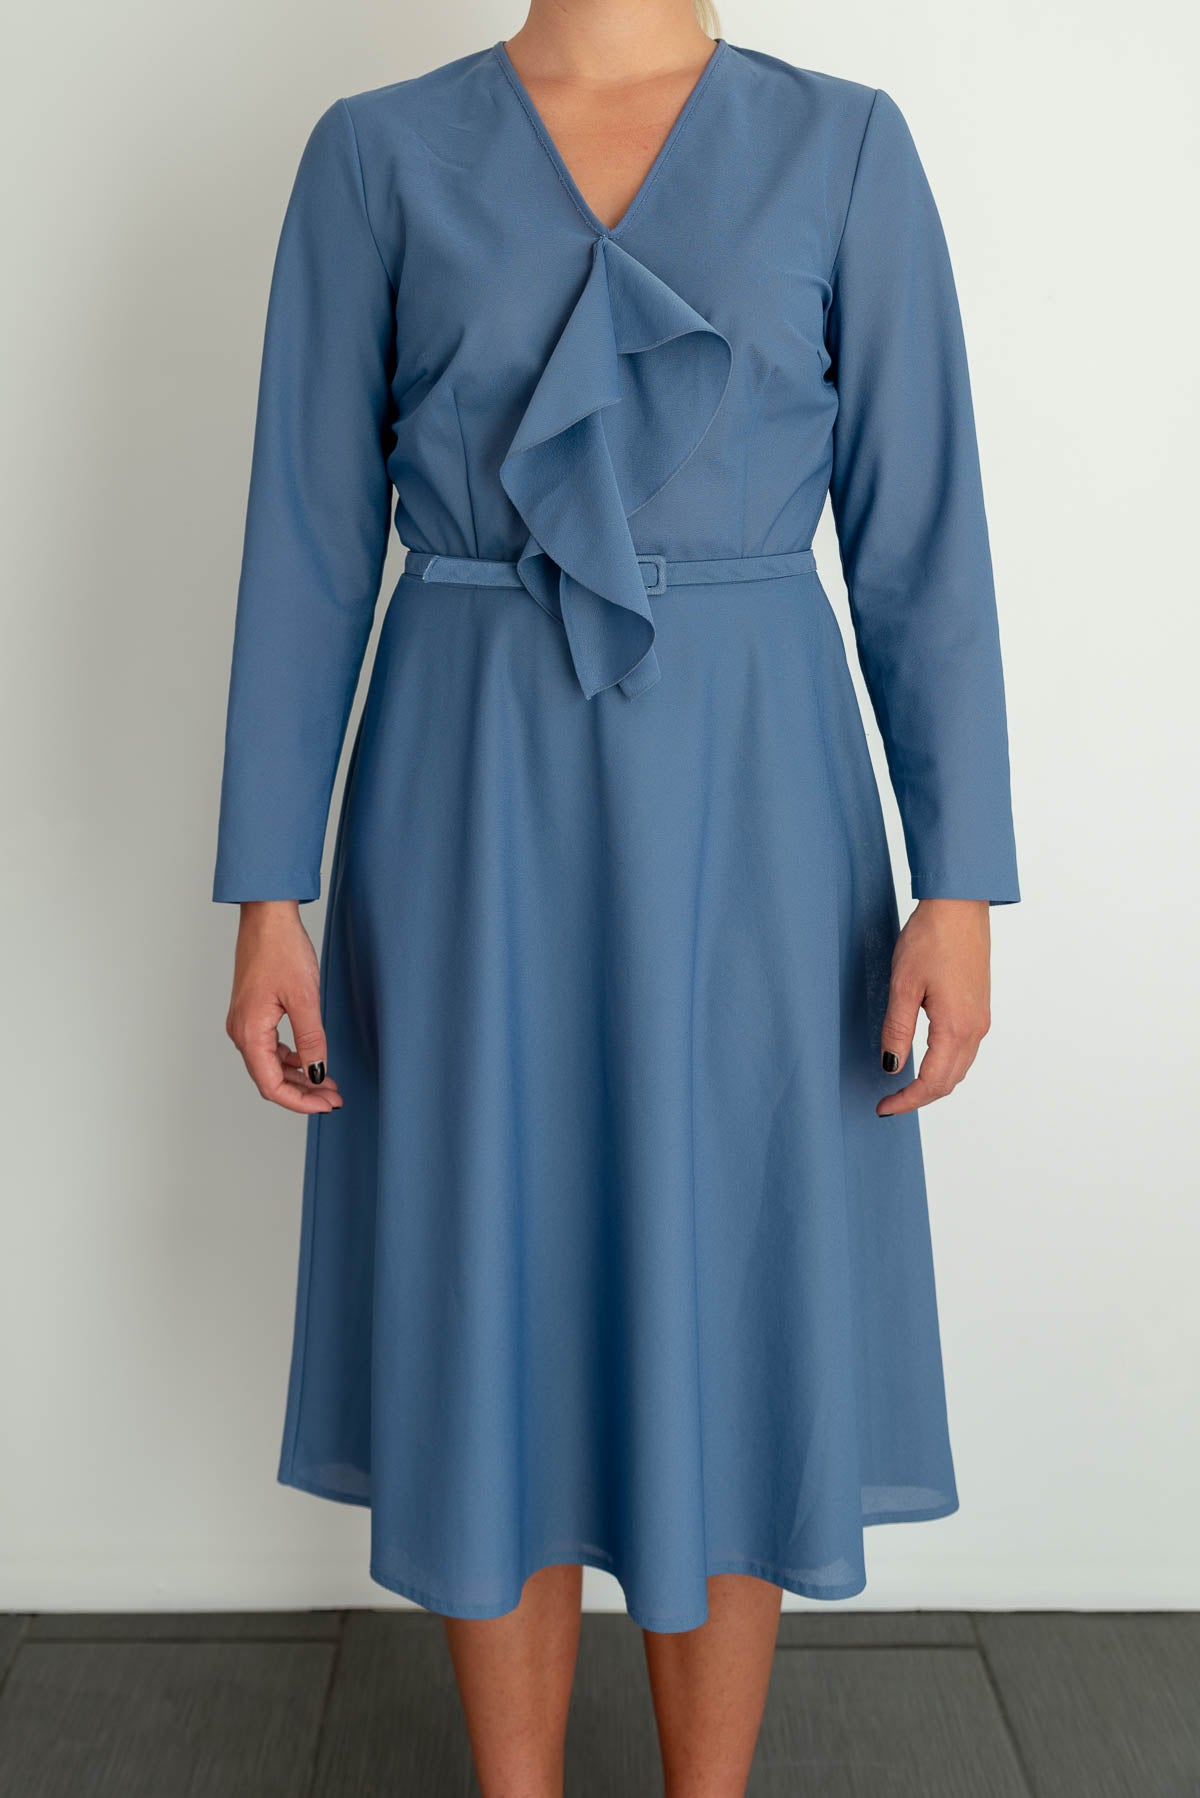 Blue Finn Karelia vintage dress from 70's - 80's Made in Finland, size L